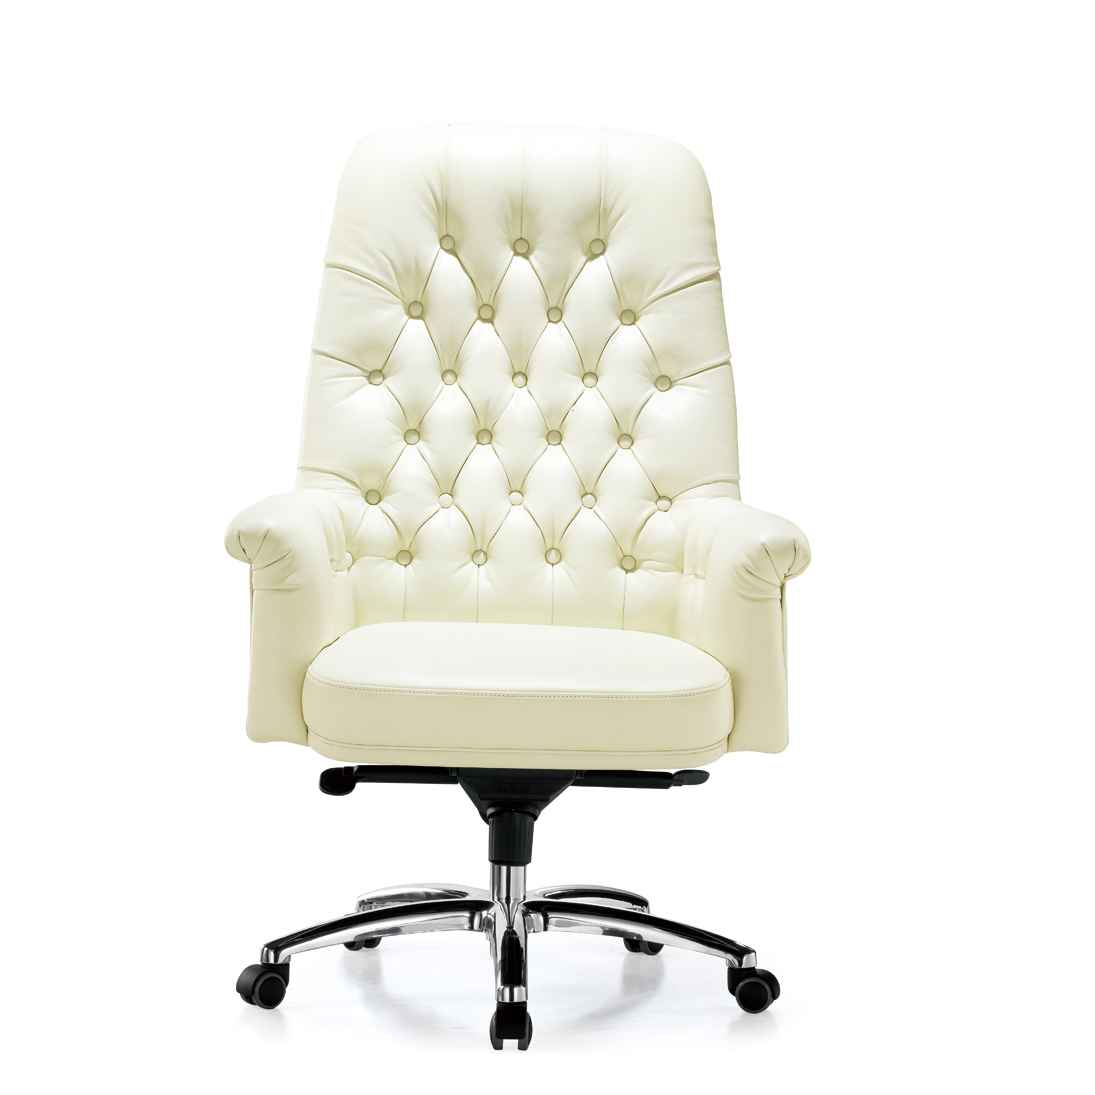 Leather Swivel Office Chair. White Desk Chair Leather Swivel Office H